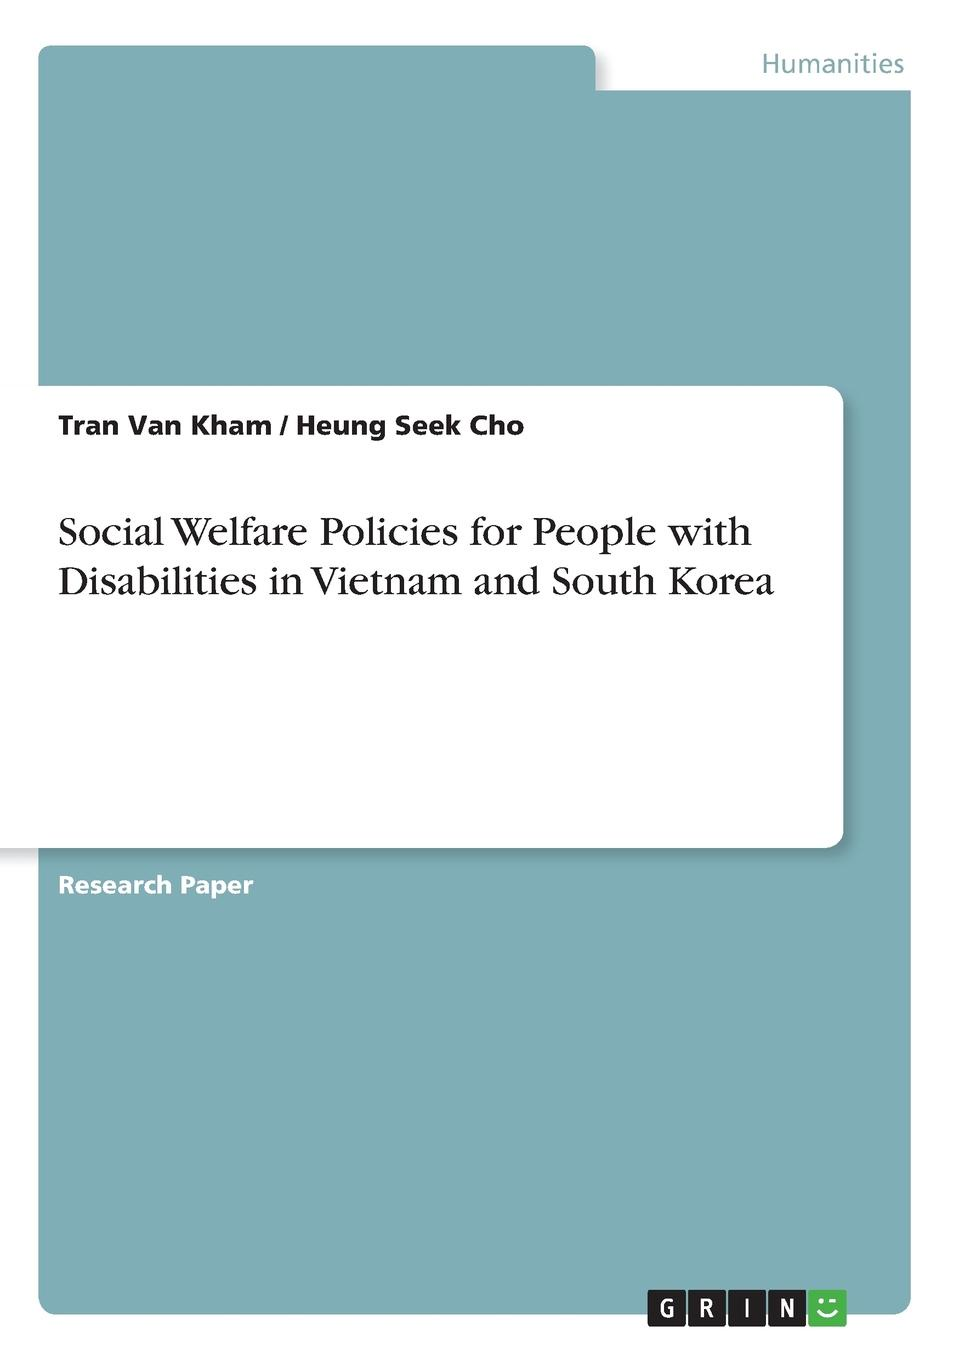 Tran Van Kham, Heung Seek Cho Social Welfare Policies for People with Disabilities in Vietnam and South Korea hannon lynn general hospital care for people with learning disabilities